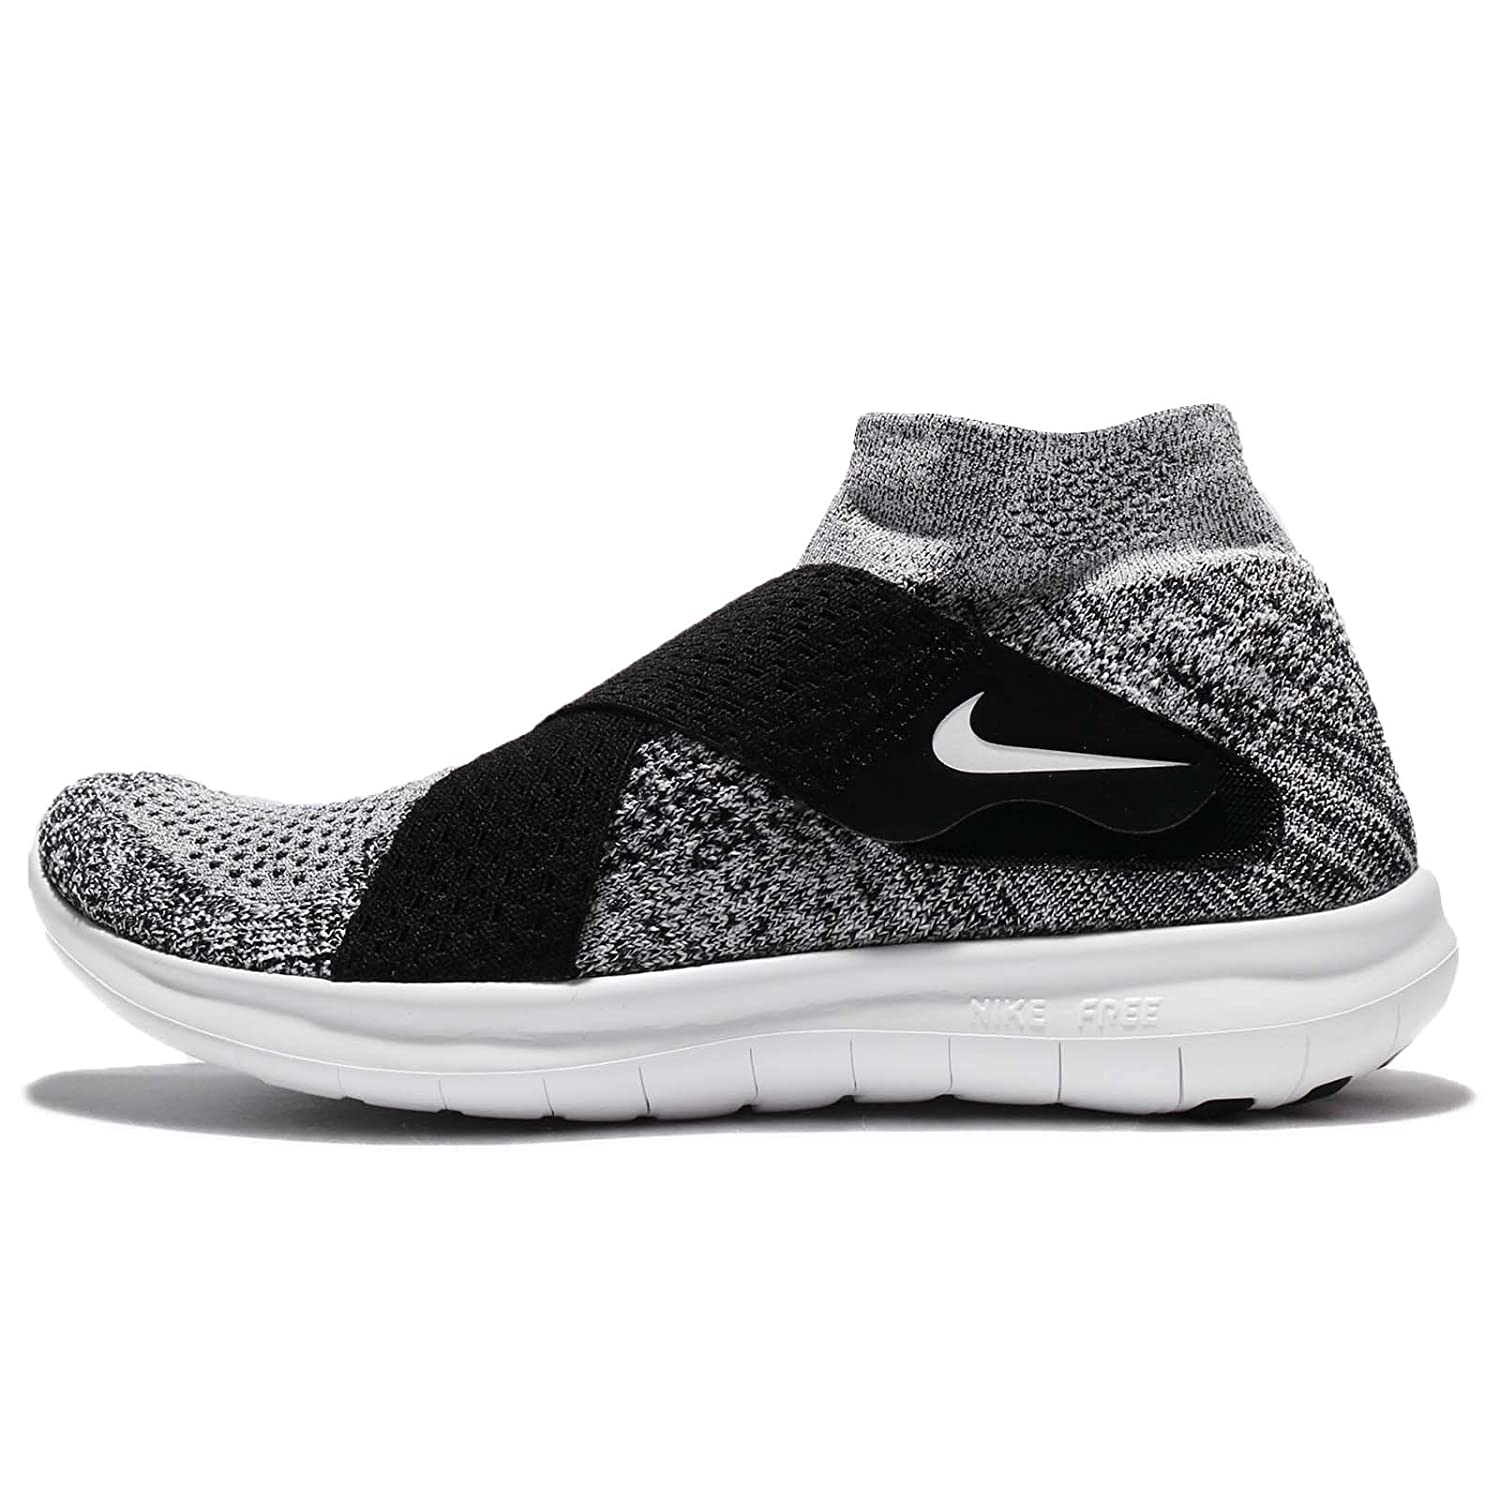 NIKE Women's Free RN Motion FK 2017 Running Shoe B00CER30WW 10 B(M) US|Grey/ Black/ White